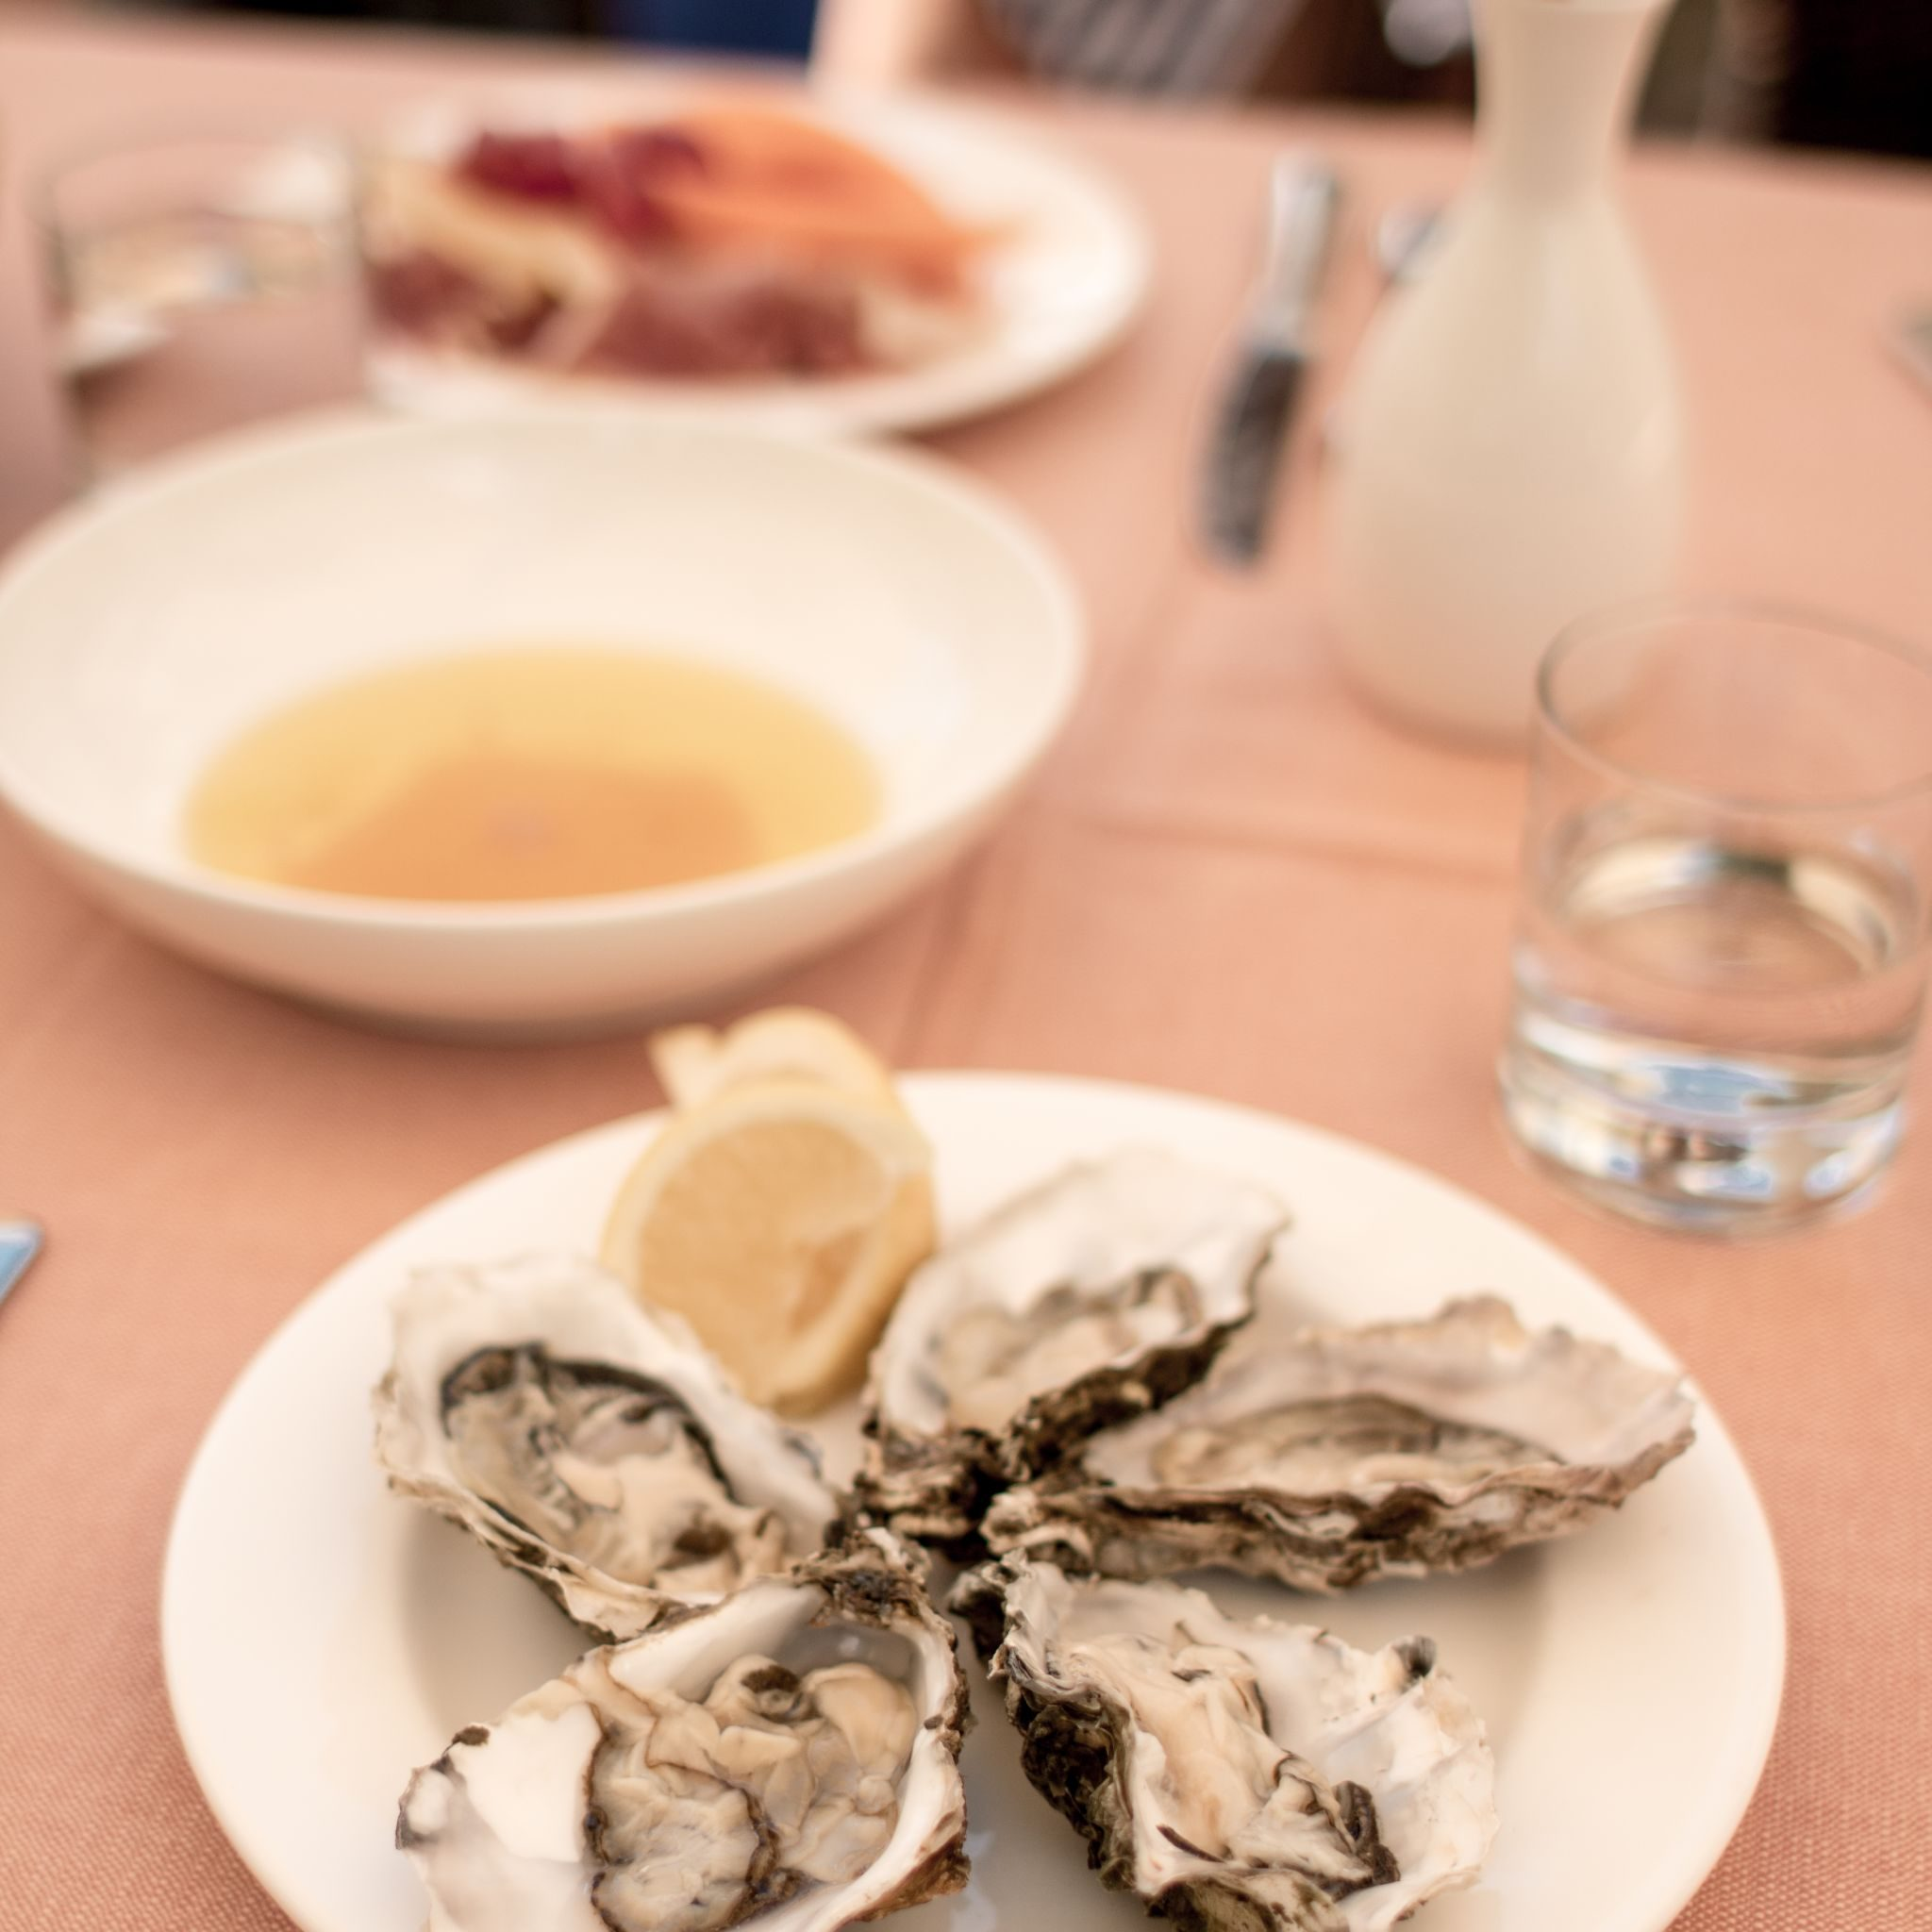 Adler Dolomites Ortisei Italy Hotel Review Oyster Afternoon Nibbles Buffet Food